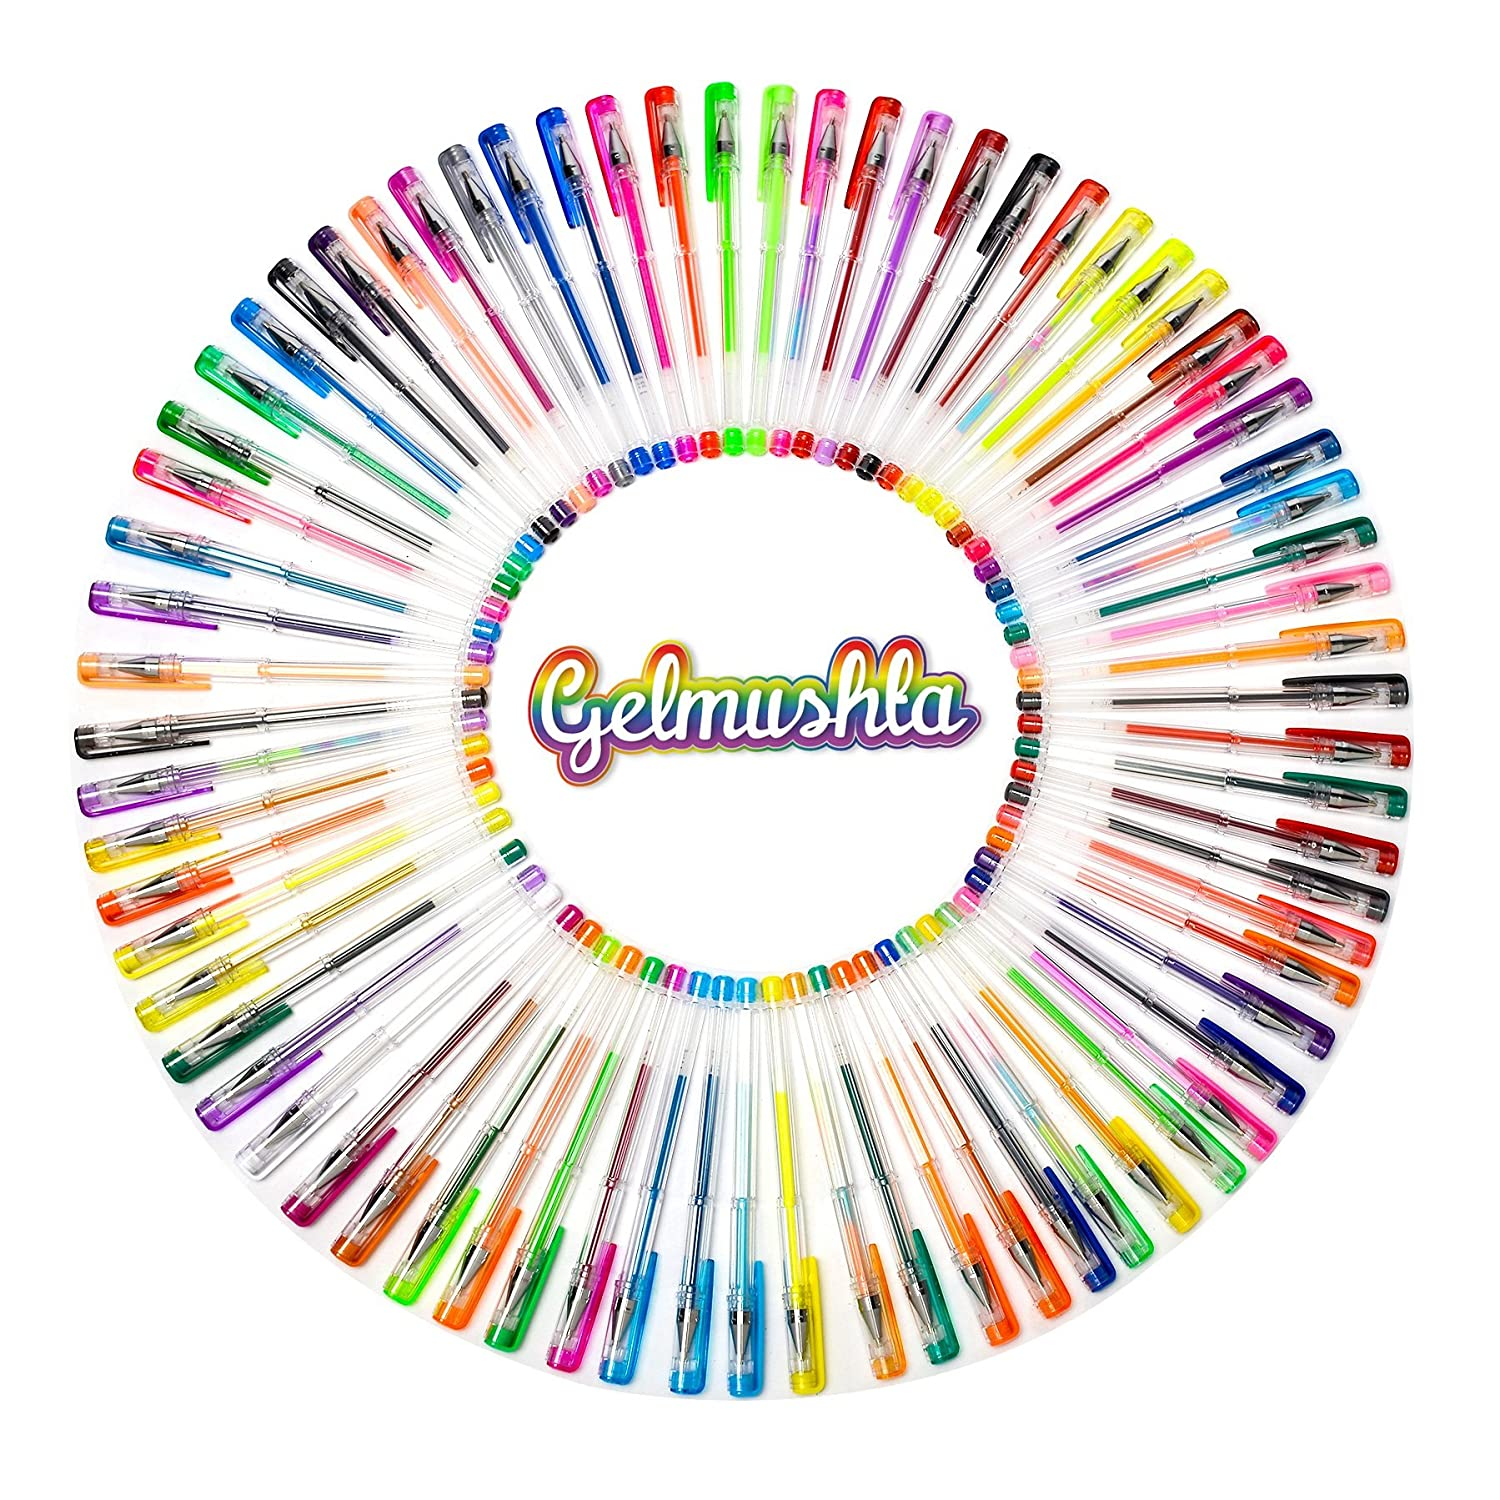 Amazon Gelmushta Gel Pens 120 Unique Colors No Duplicates Set For Adult Coloring Books Drawing With Case Office Products